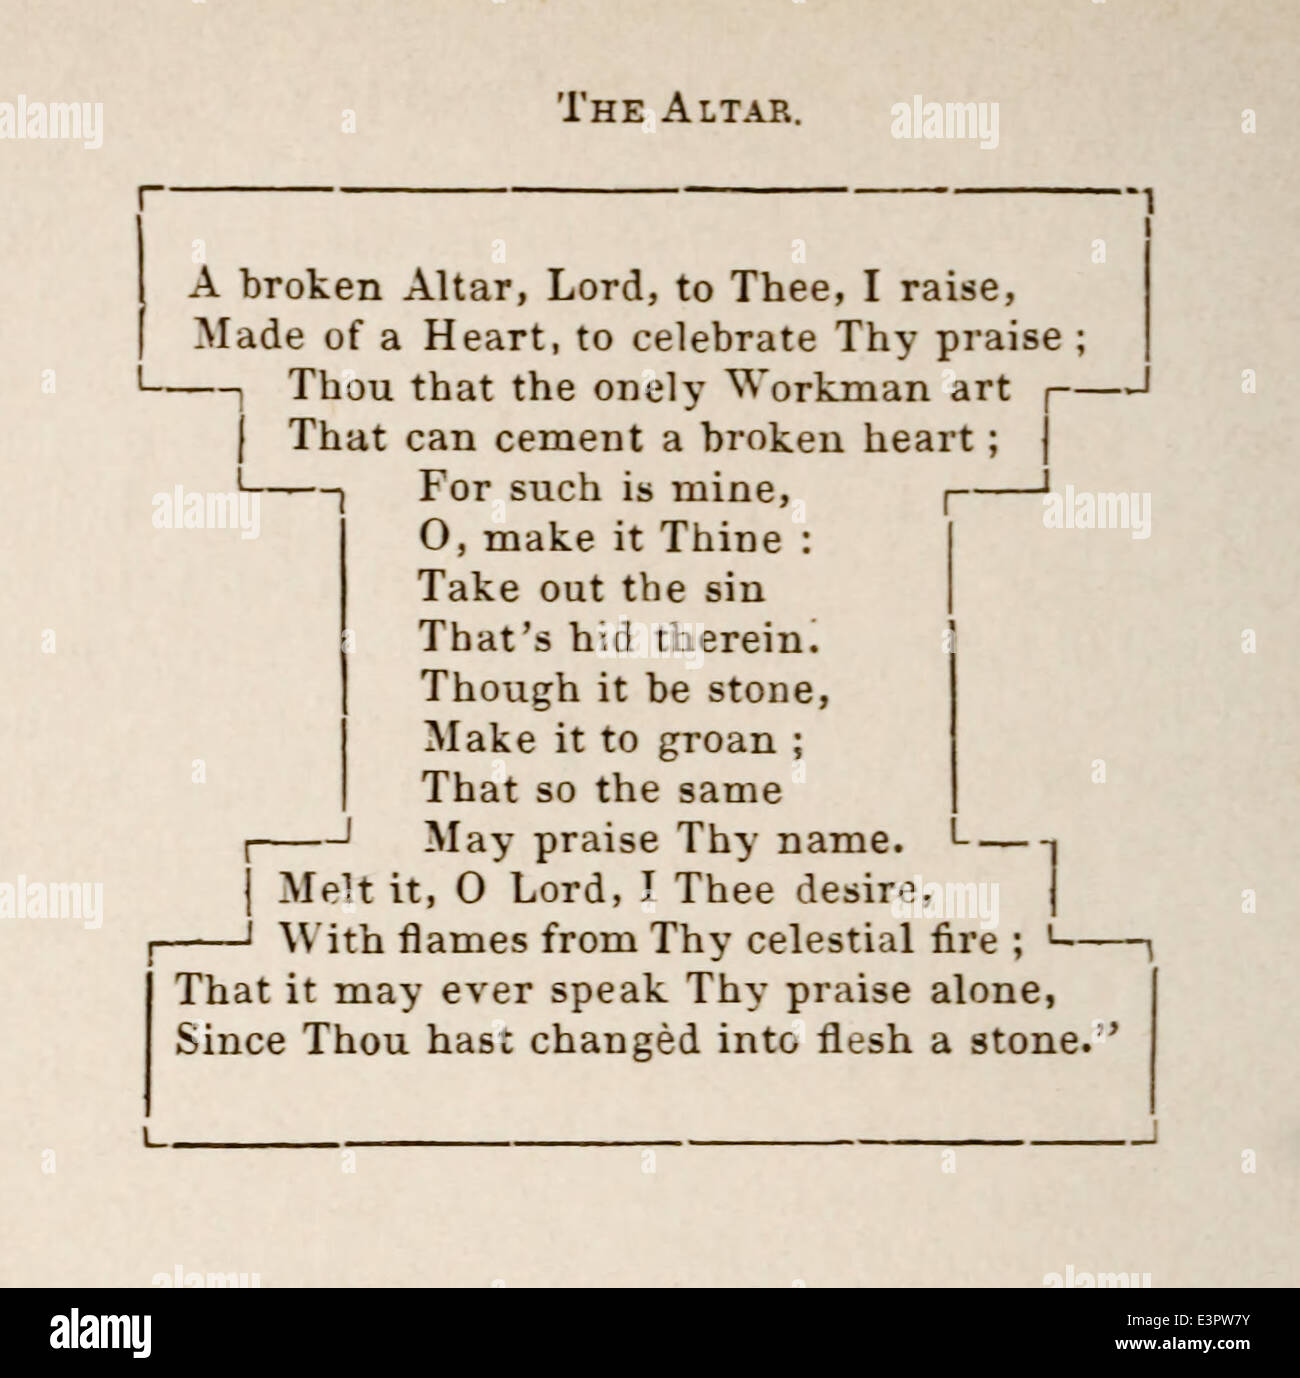 George Herbert (1593-1633) poem 'The Altar' first published in 'The Temple' in 1633. - Stock Image